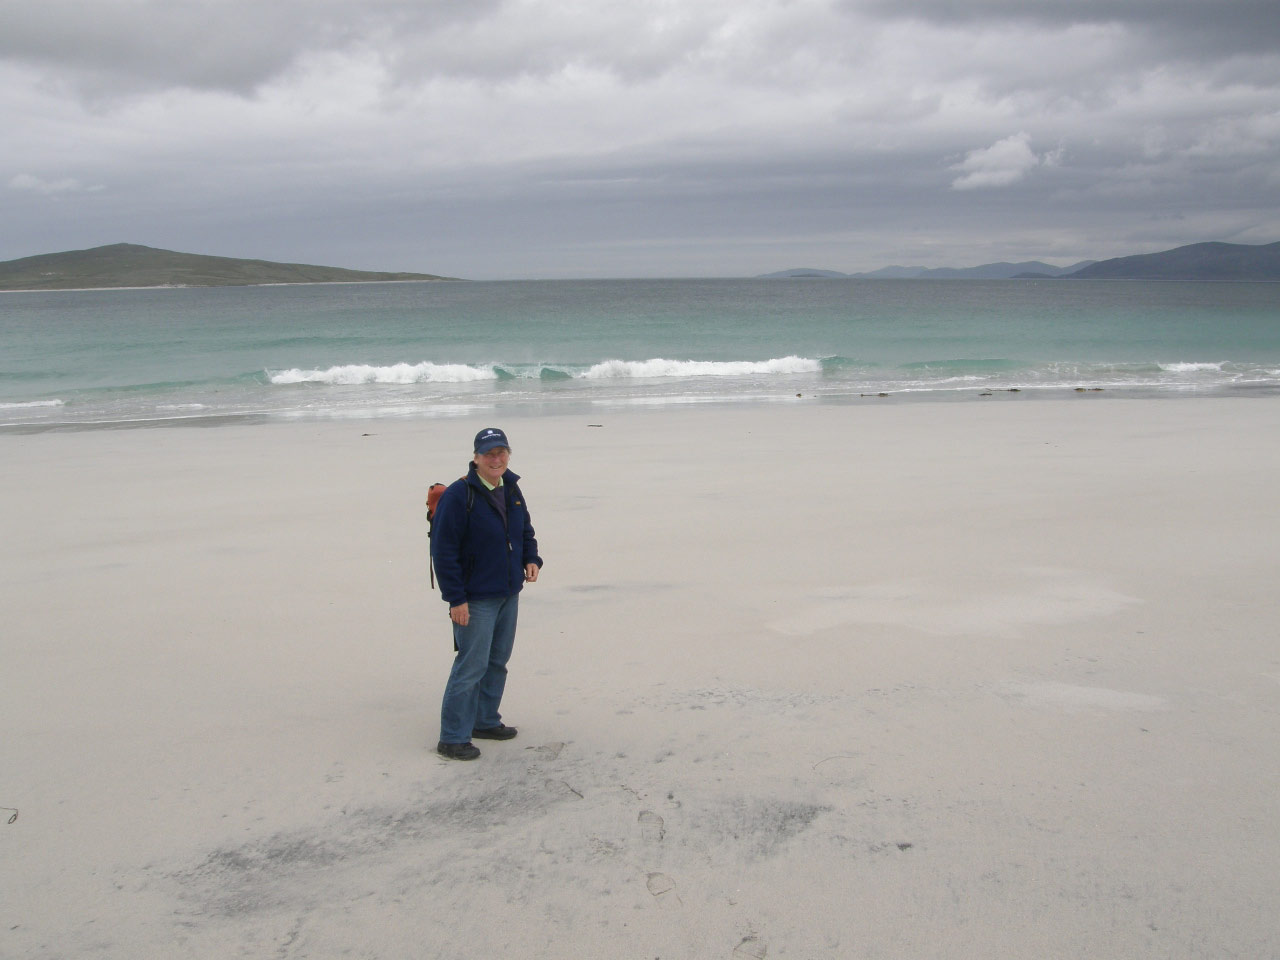 Western Beach, Berneray